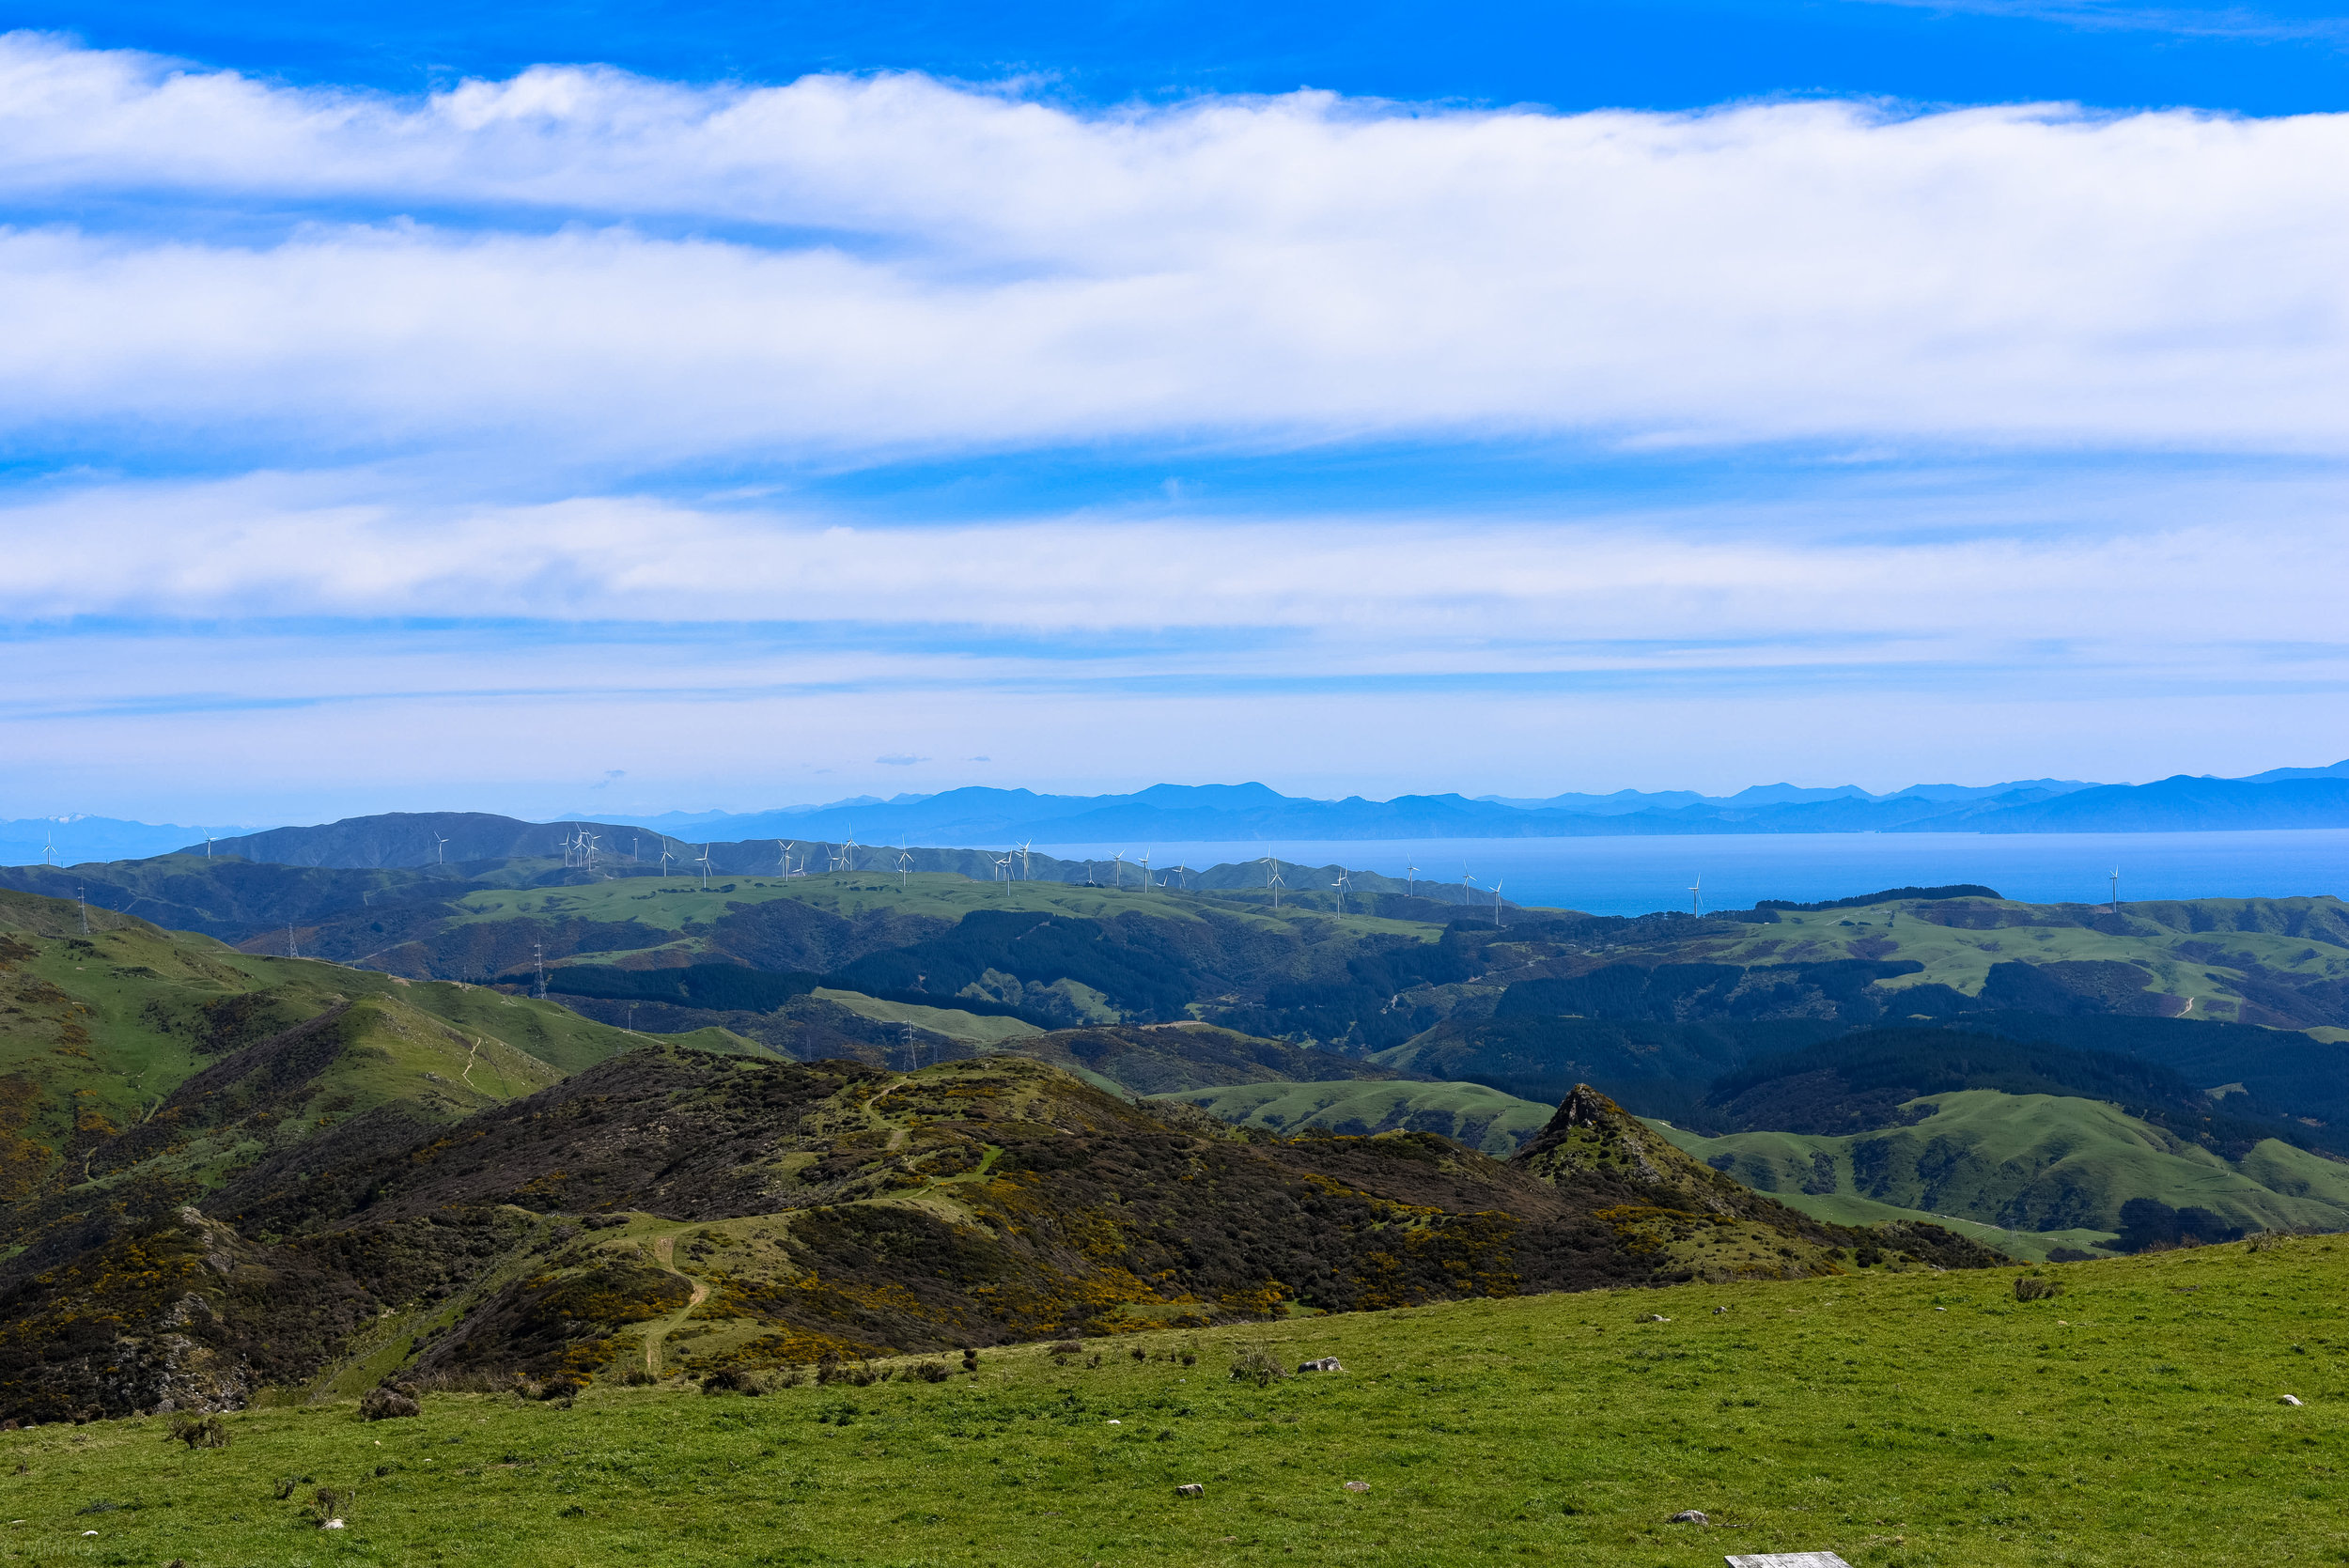 Looking towards Makara and the wind farm. Lots of people were running up this way. I have been told that there is a good running trail from there. Fitness level needed: high!